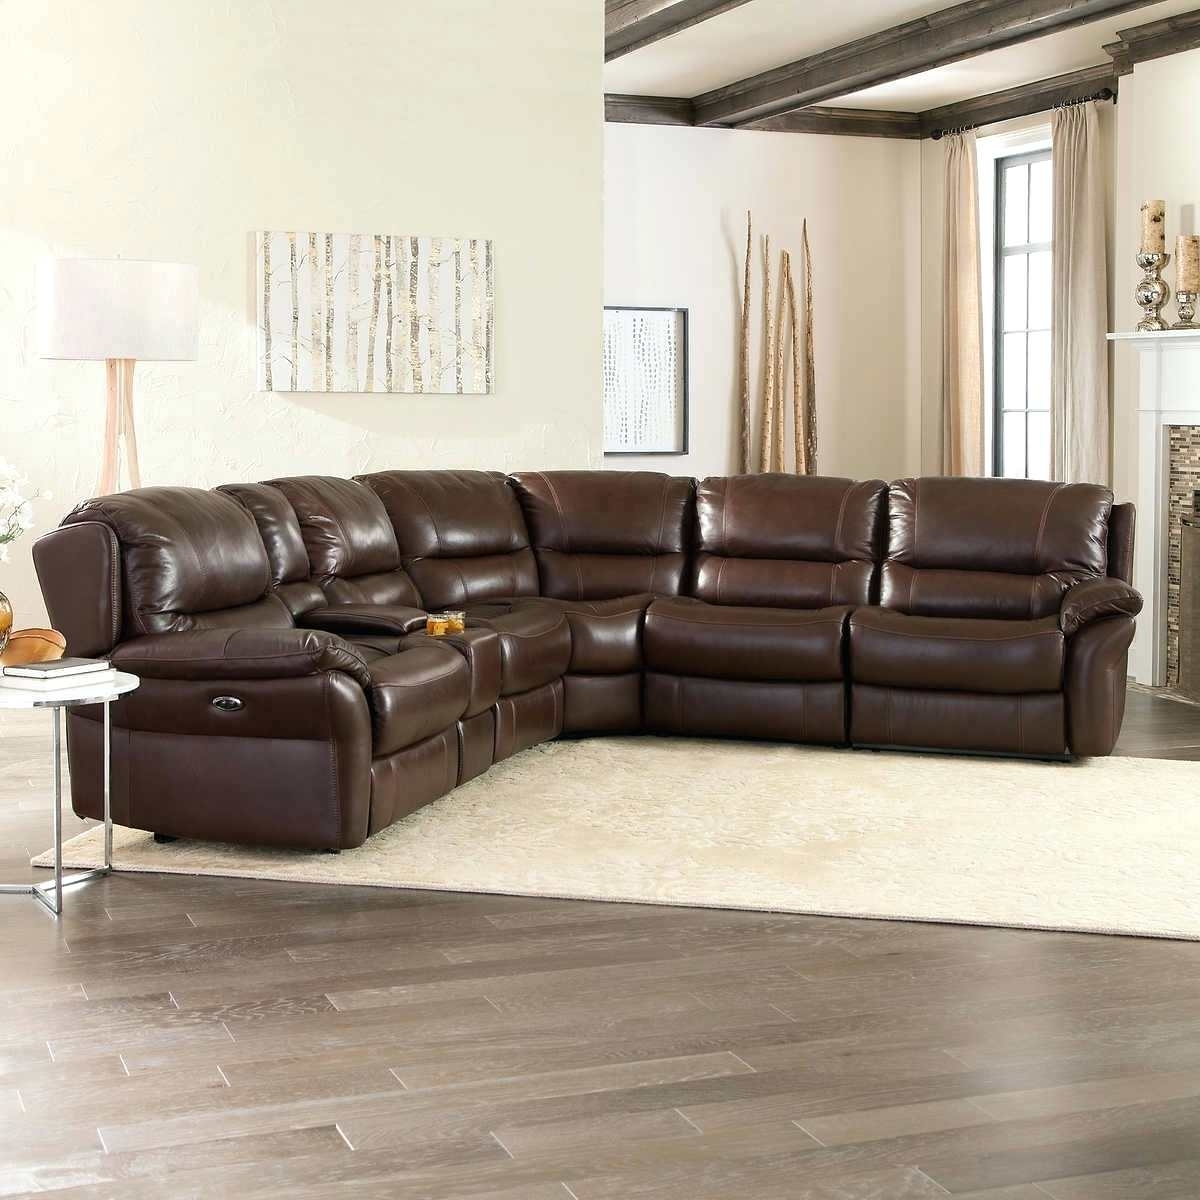 Costco Recliner S S Costco Reclining Sectional Sofas Costco Within Preferred Sectional Sofas With Electric Recliners (View 10 of 20)